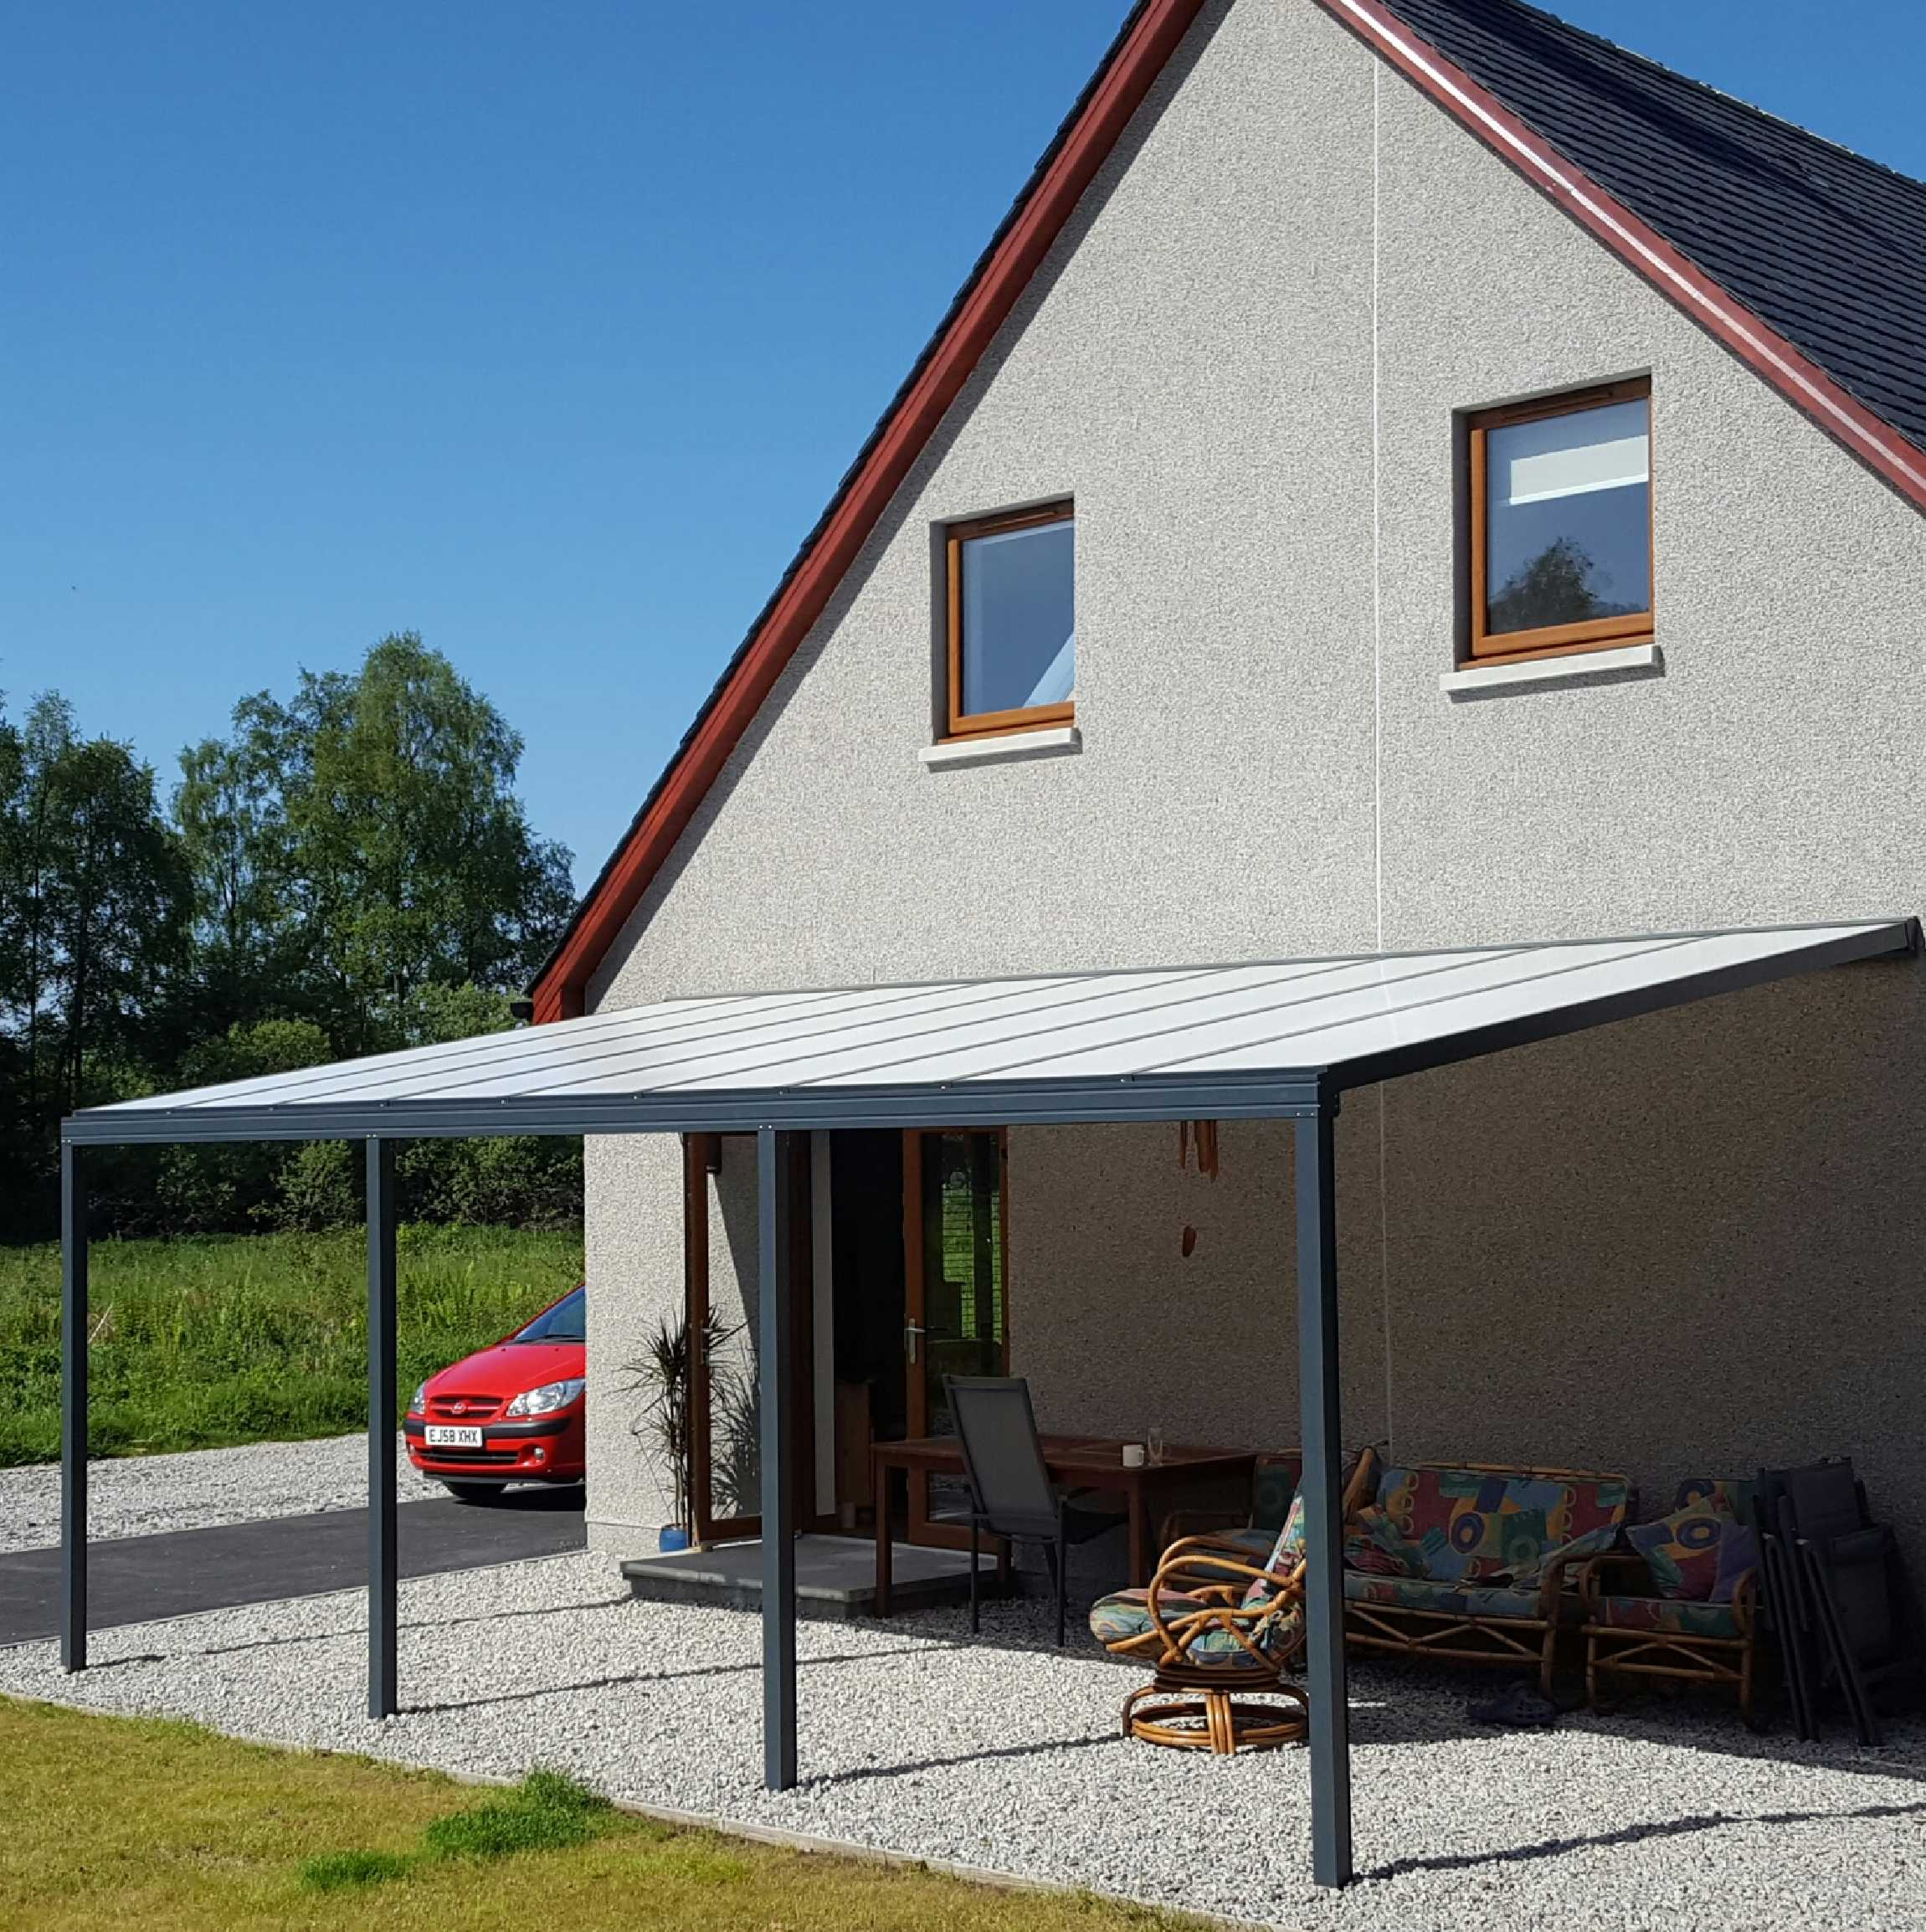 Great selection of Omega Smart Lean-To Canopy, Anthracite Grey, 16mm Polycarbonate Glazing - 12.0m (W) x 3.0m (P), (5) Supporting Posts